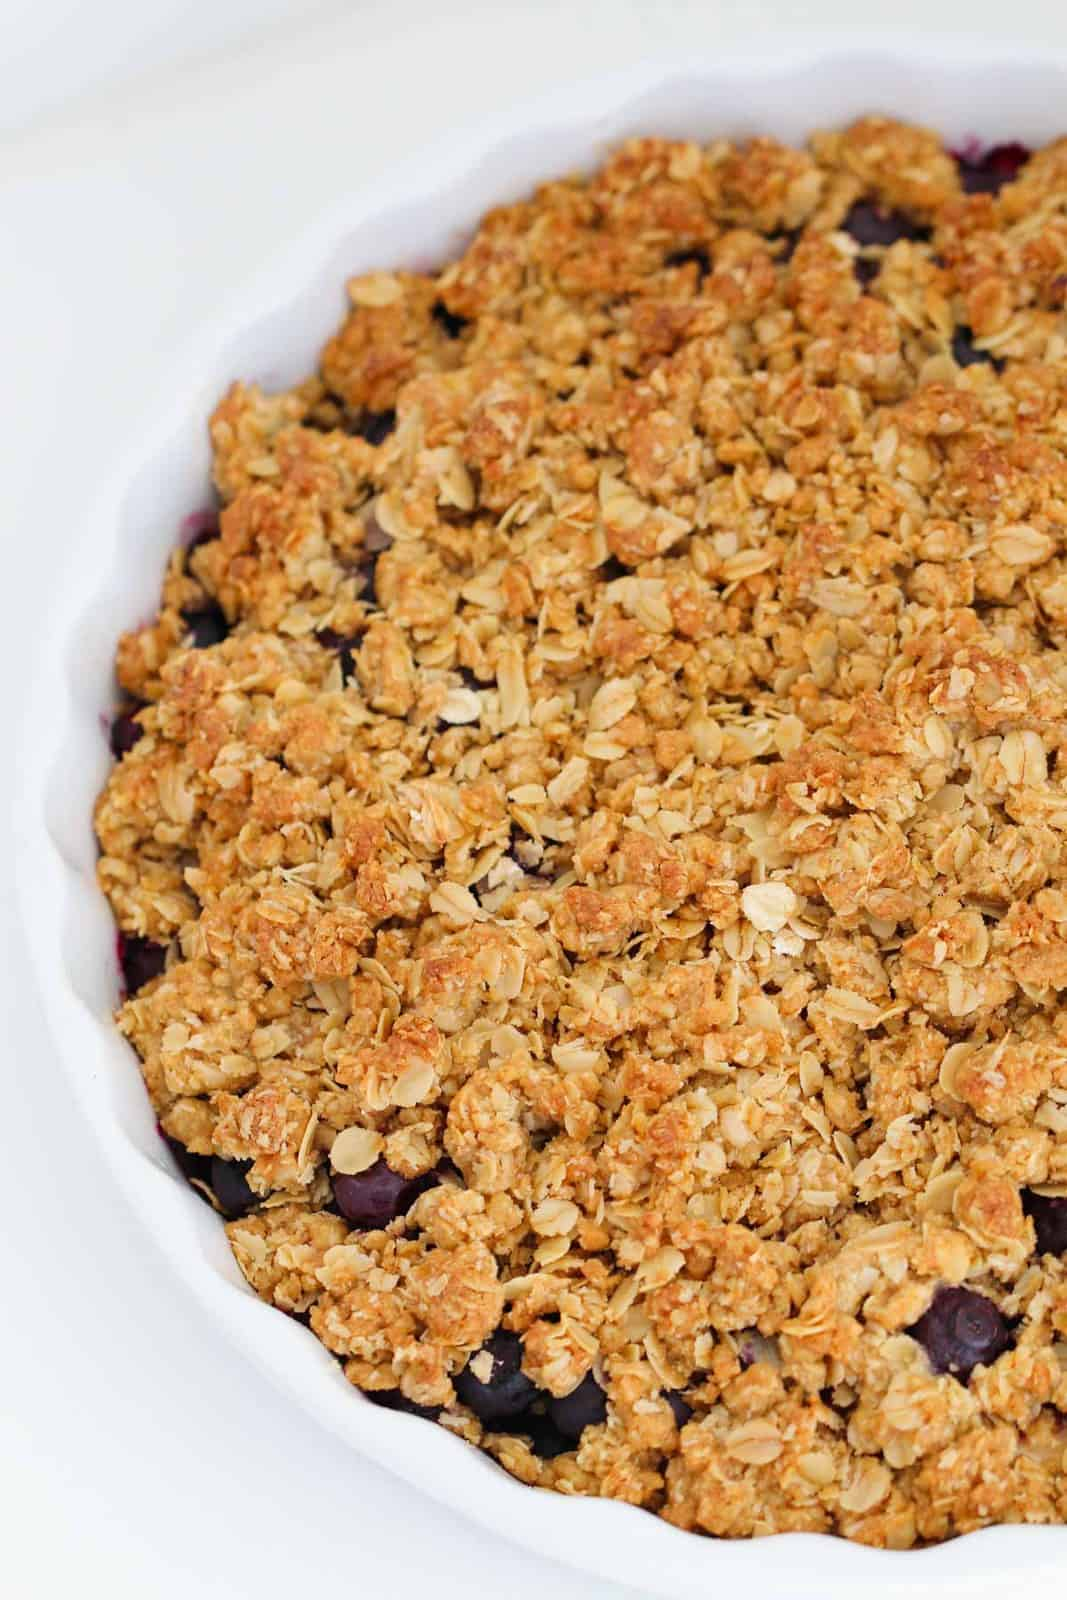 Overhead shot of apple and blueberry crumble in a baking dish